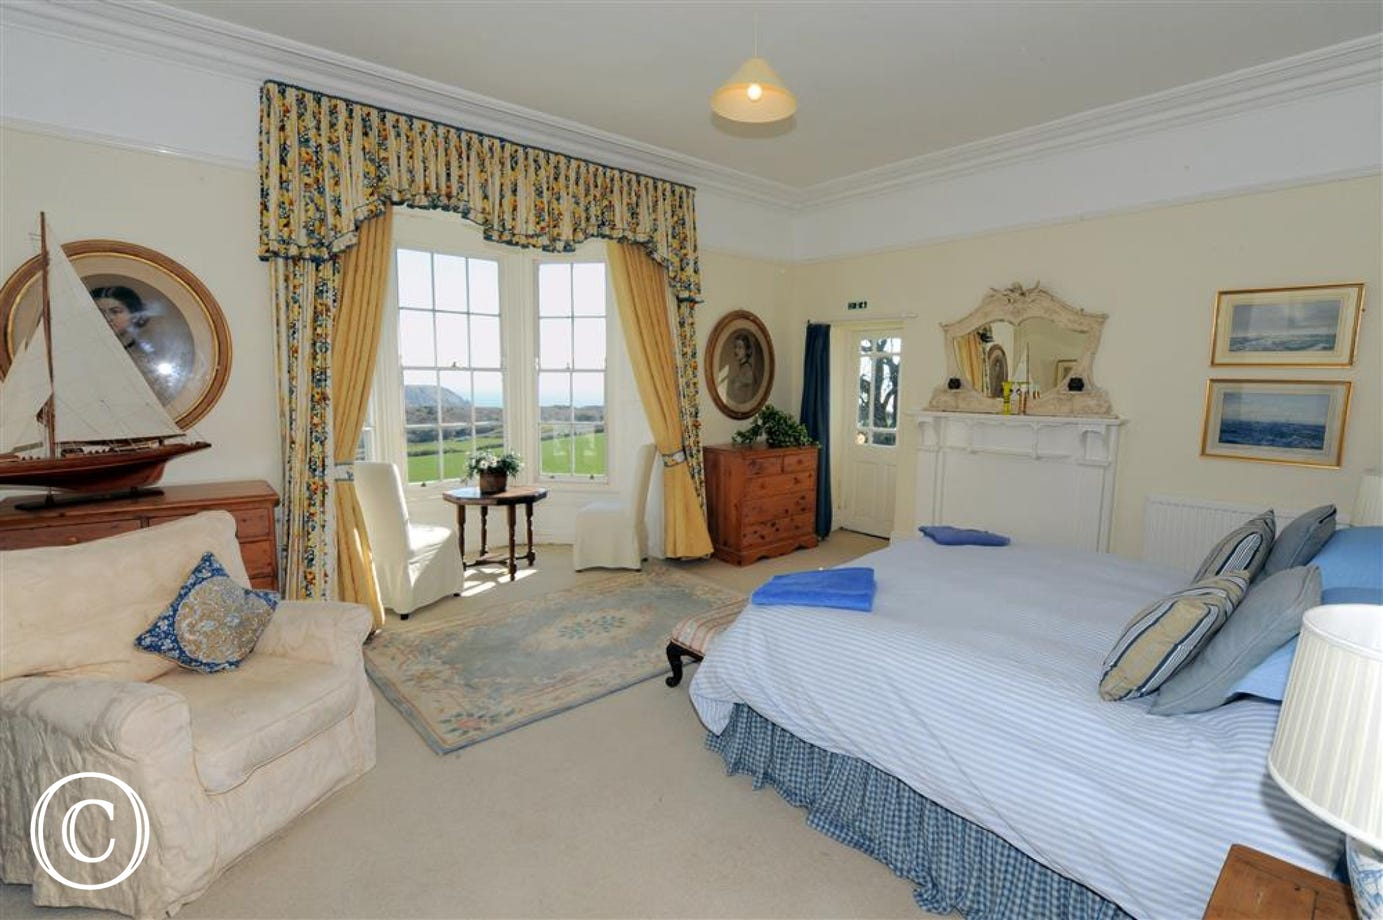 Master bedroom suite with Stunning views from the bay window!